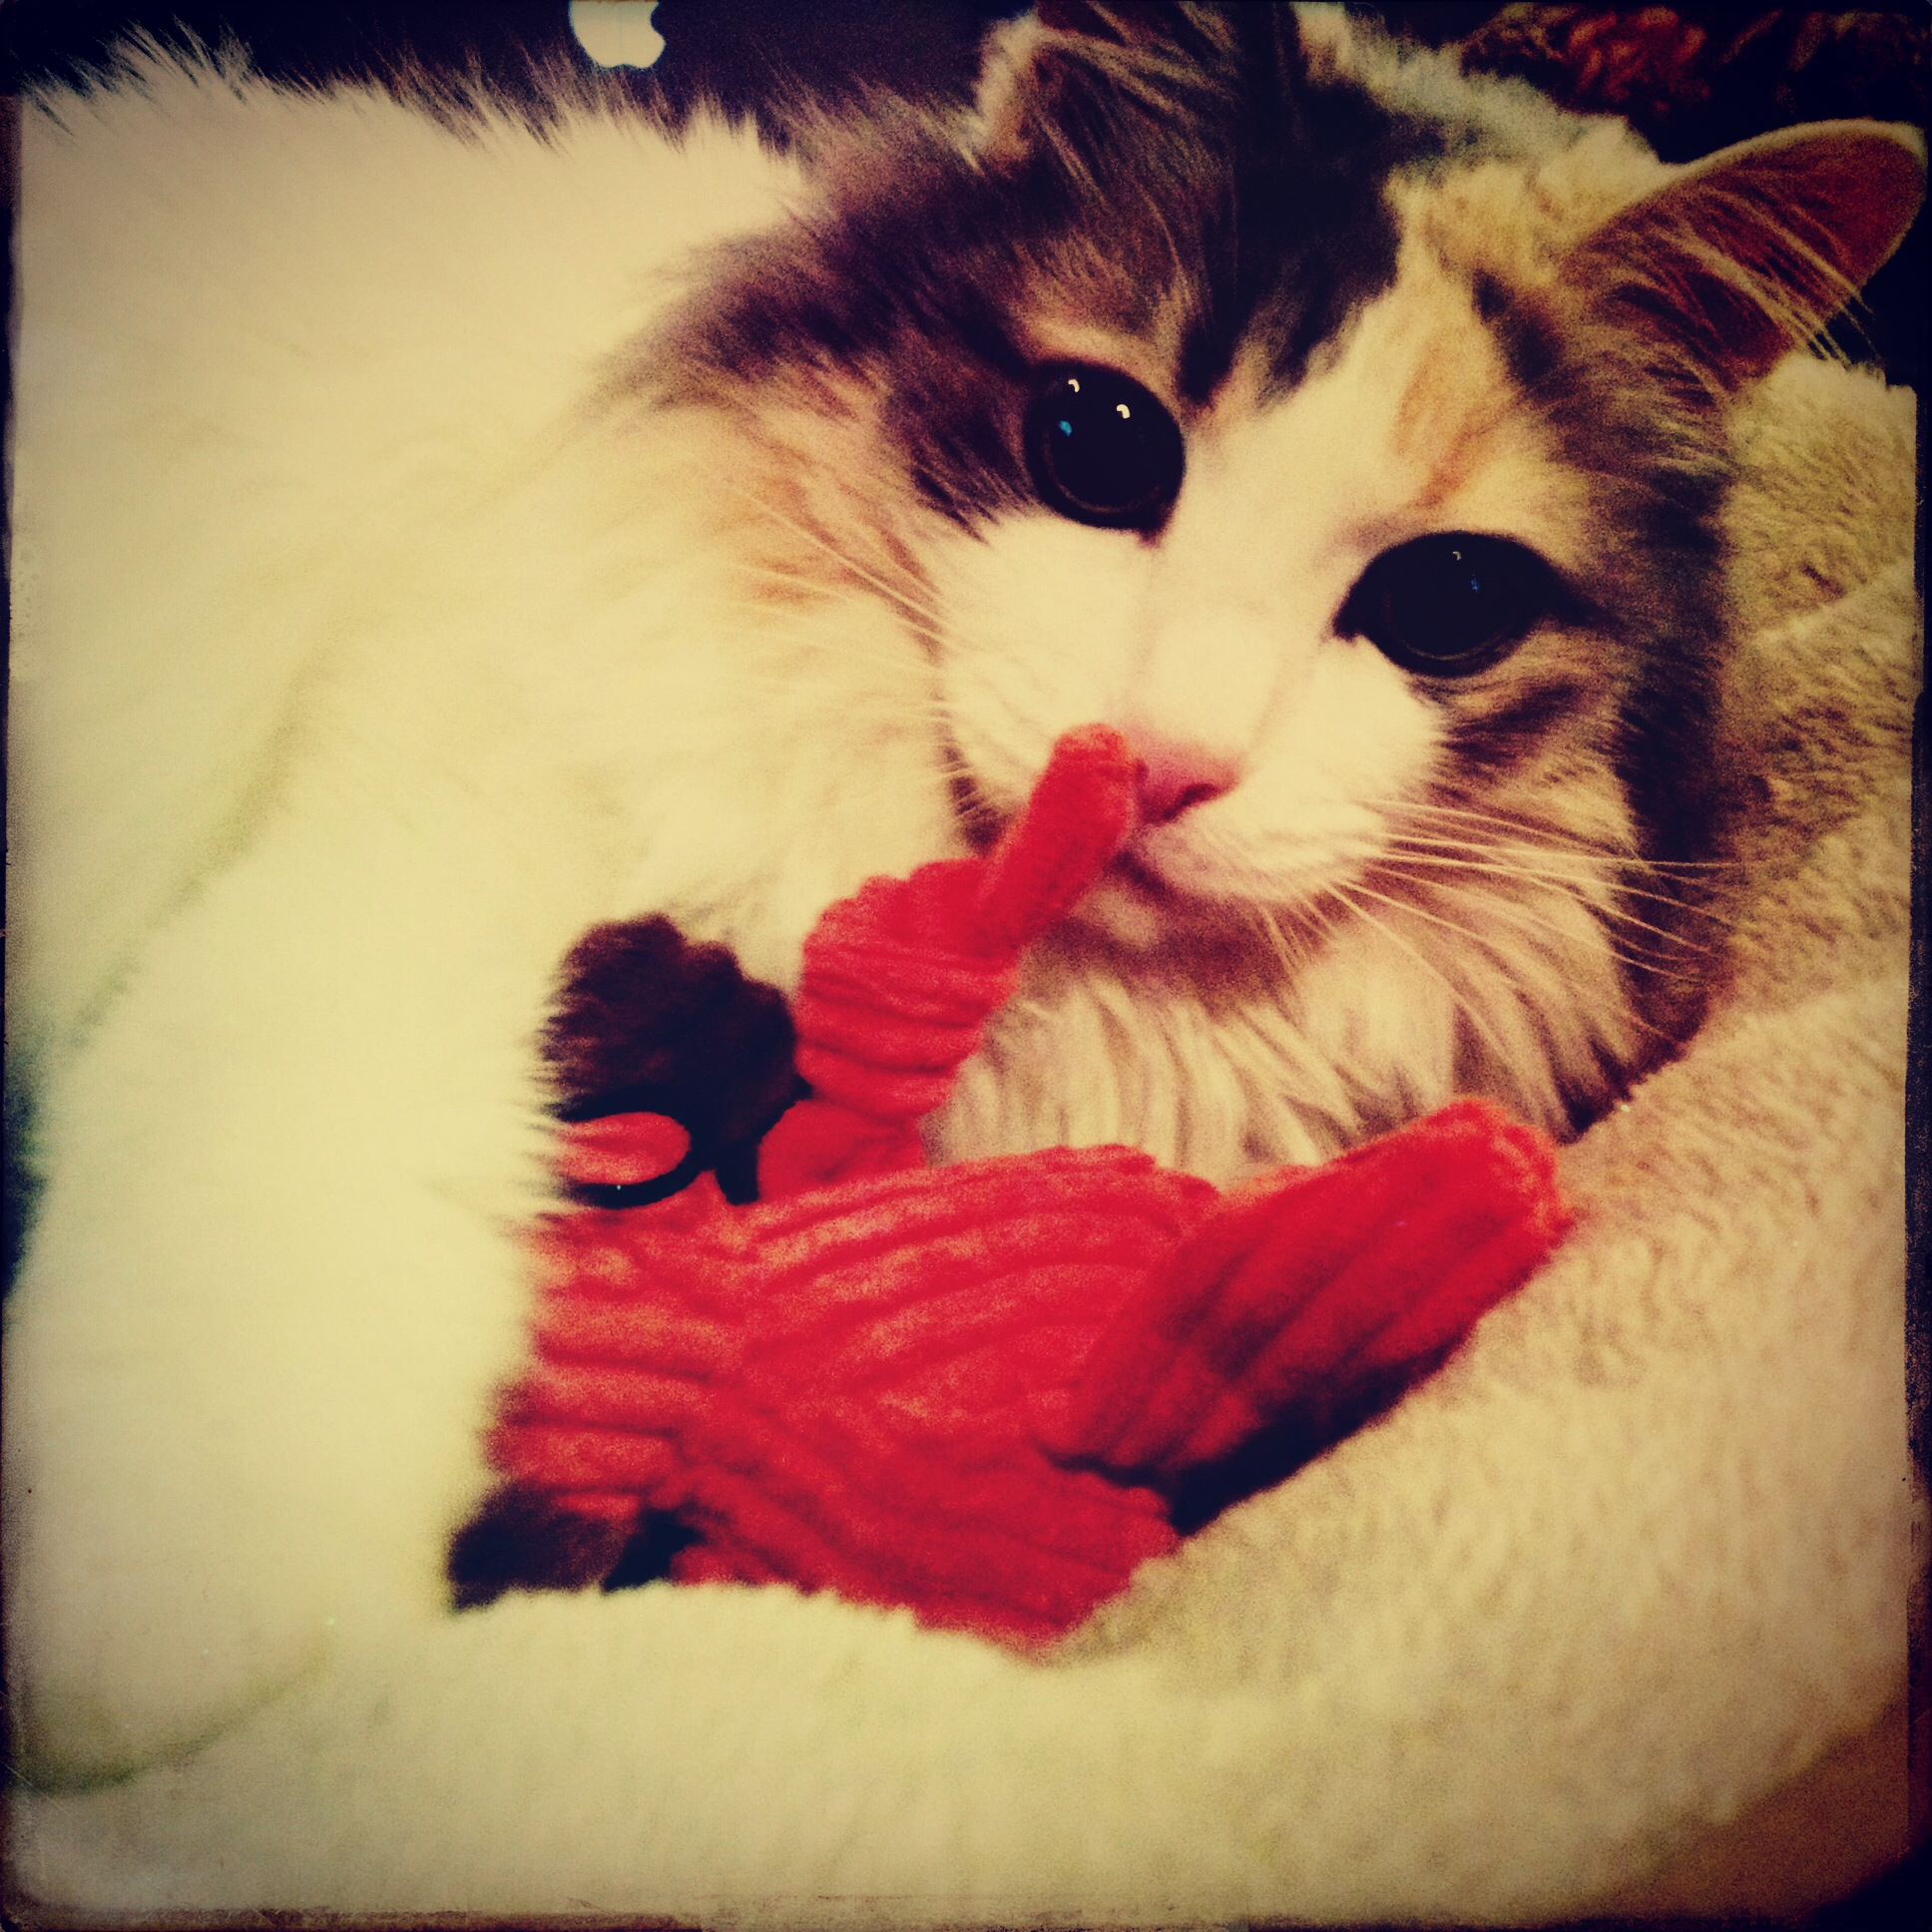 And her sweet kitty sent my kitty a toy, so sweet!